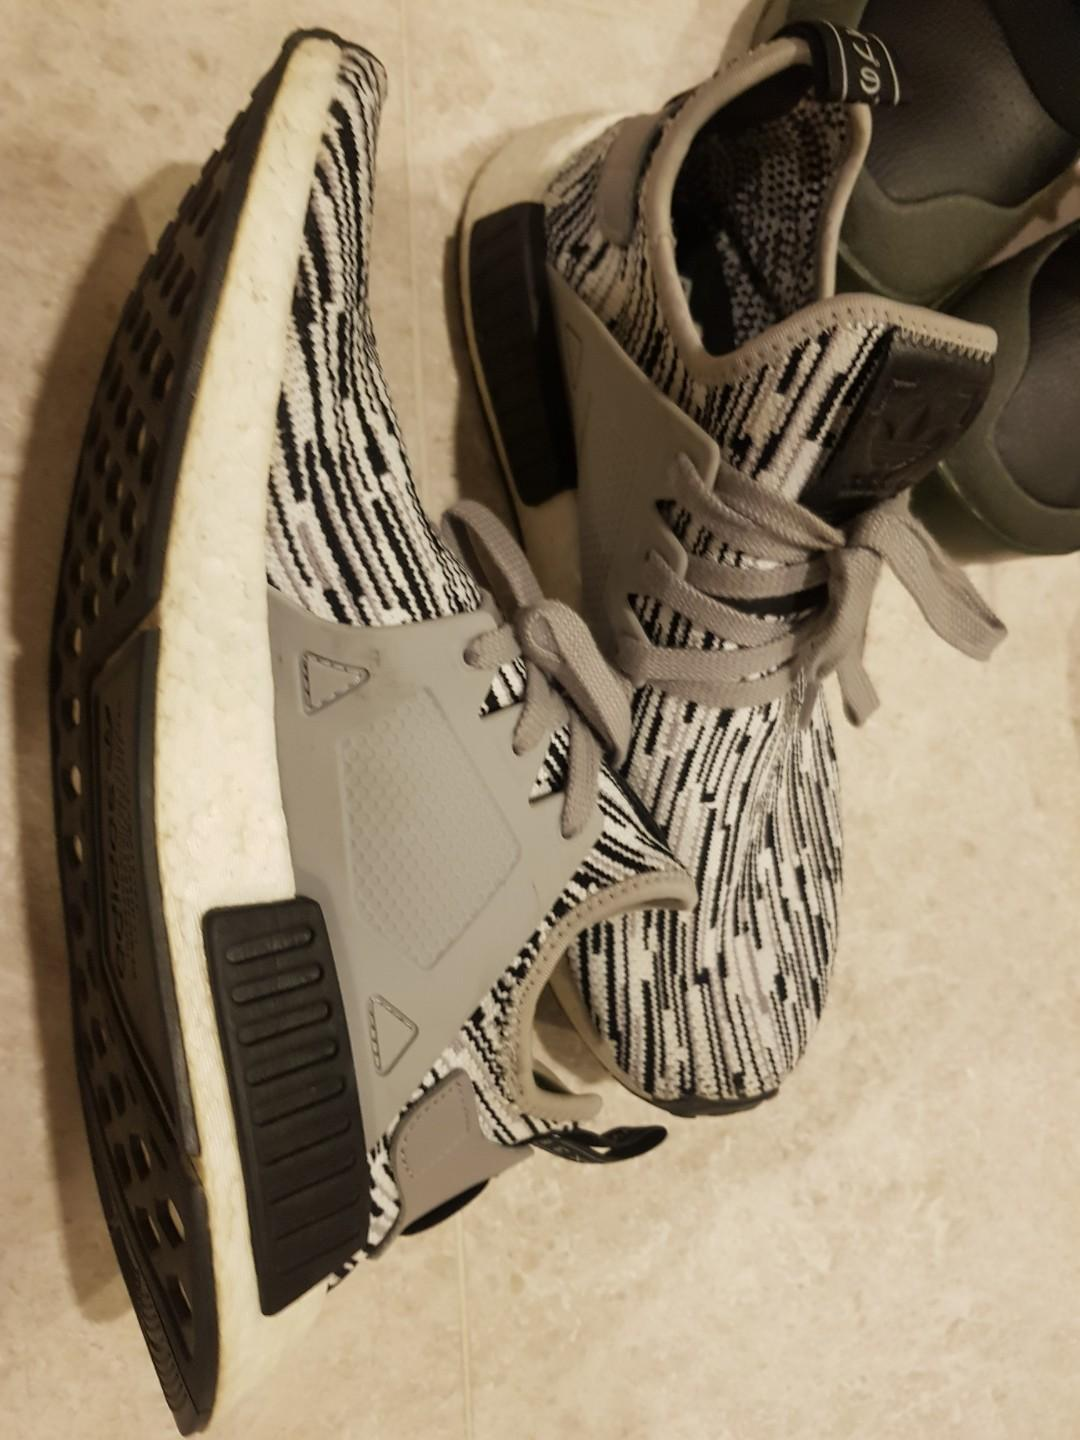 100% Authentic Adidas NMD hardly used to cheap sale. promotion steal